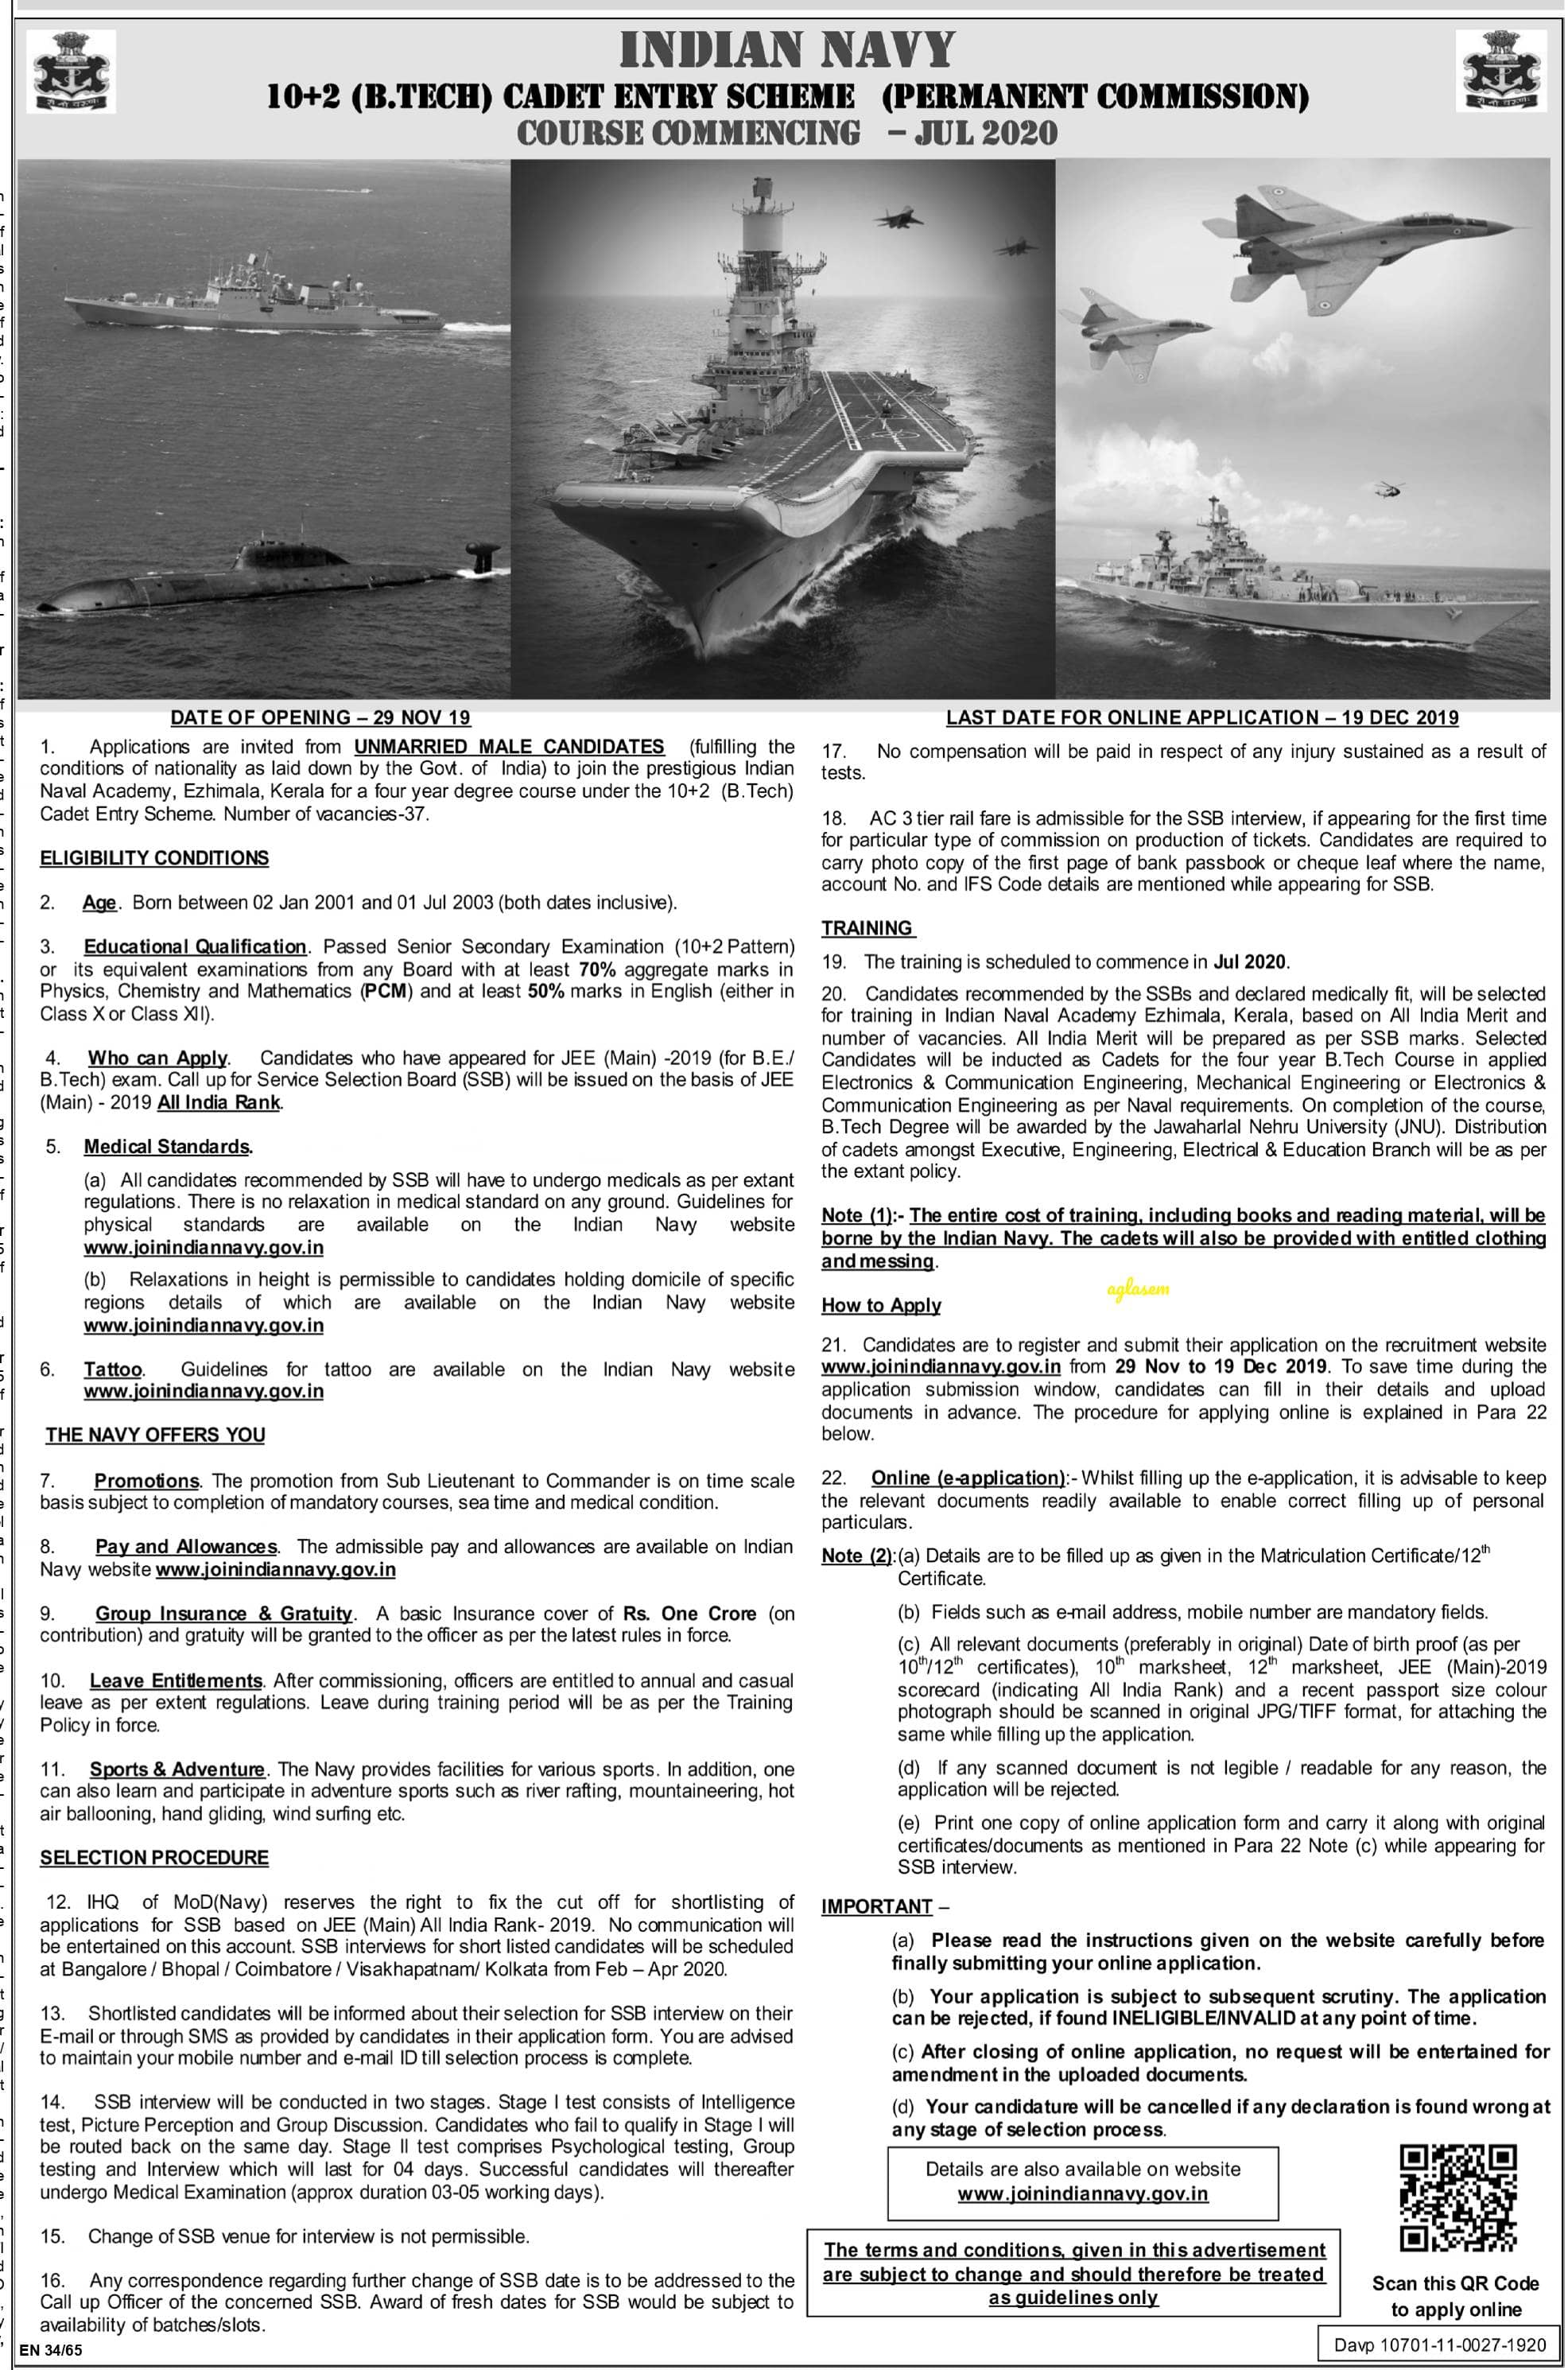 Indian Navy 10+2 B.Tech Entry Jul 2020 Notification Out, Apply Online From 29 Nov